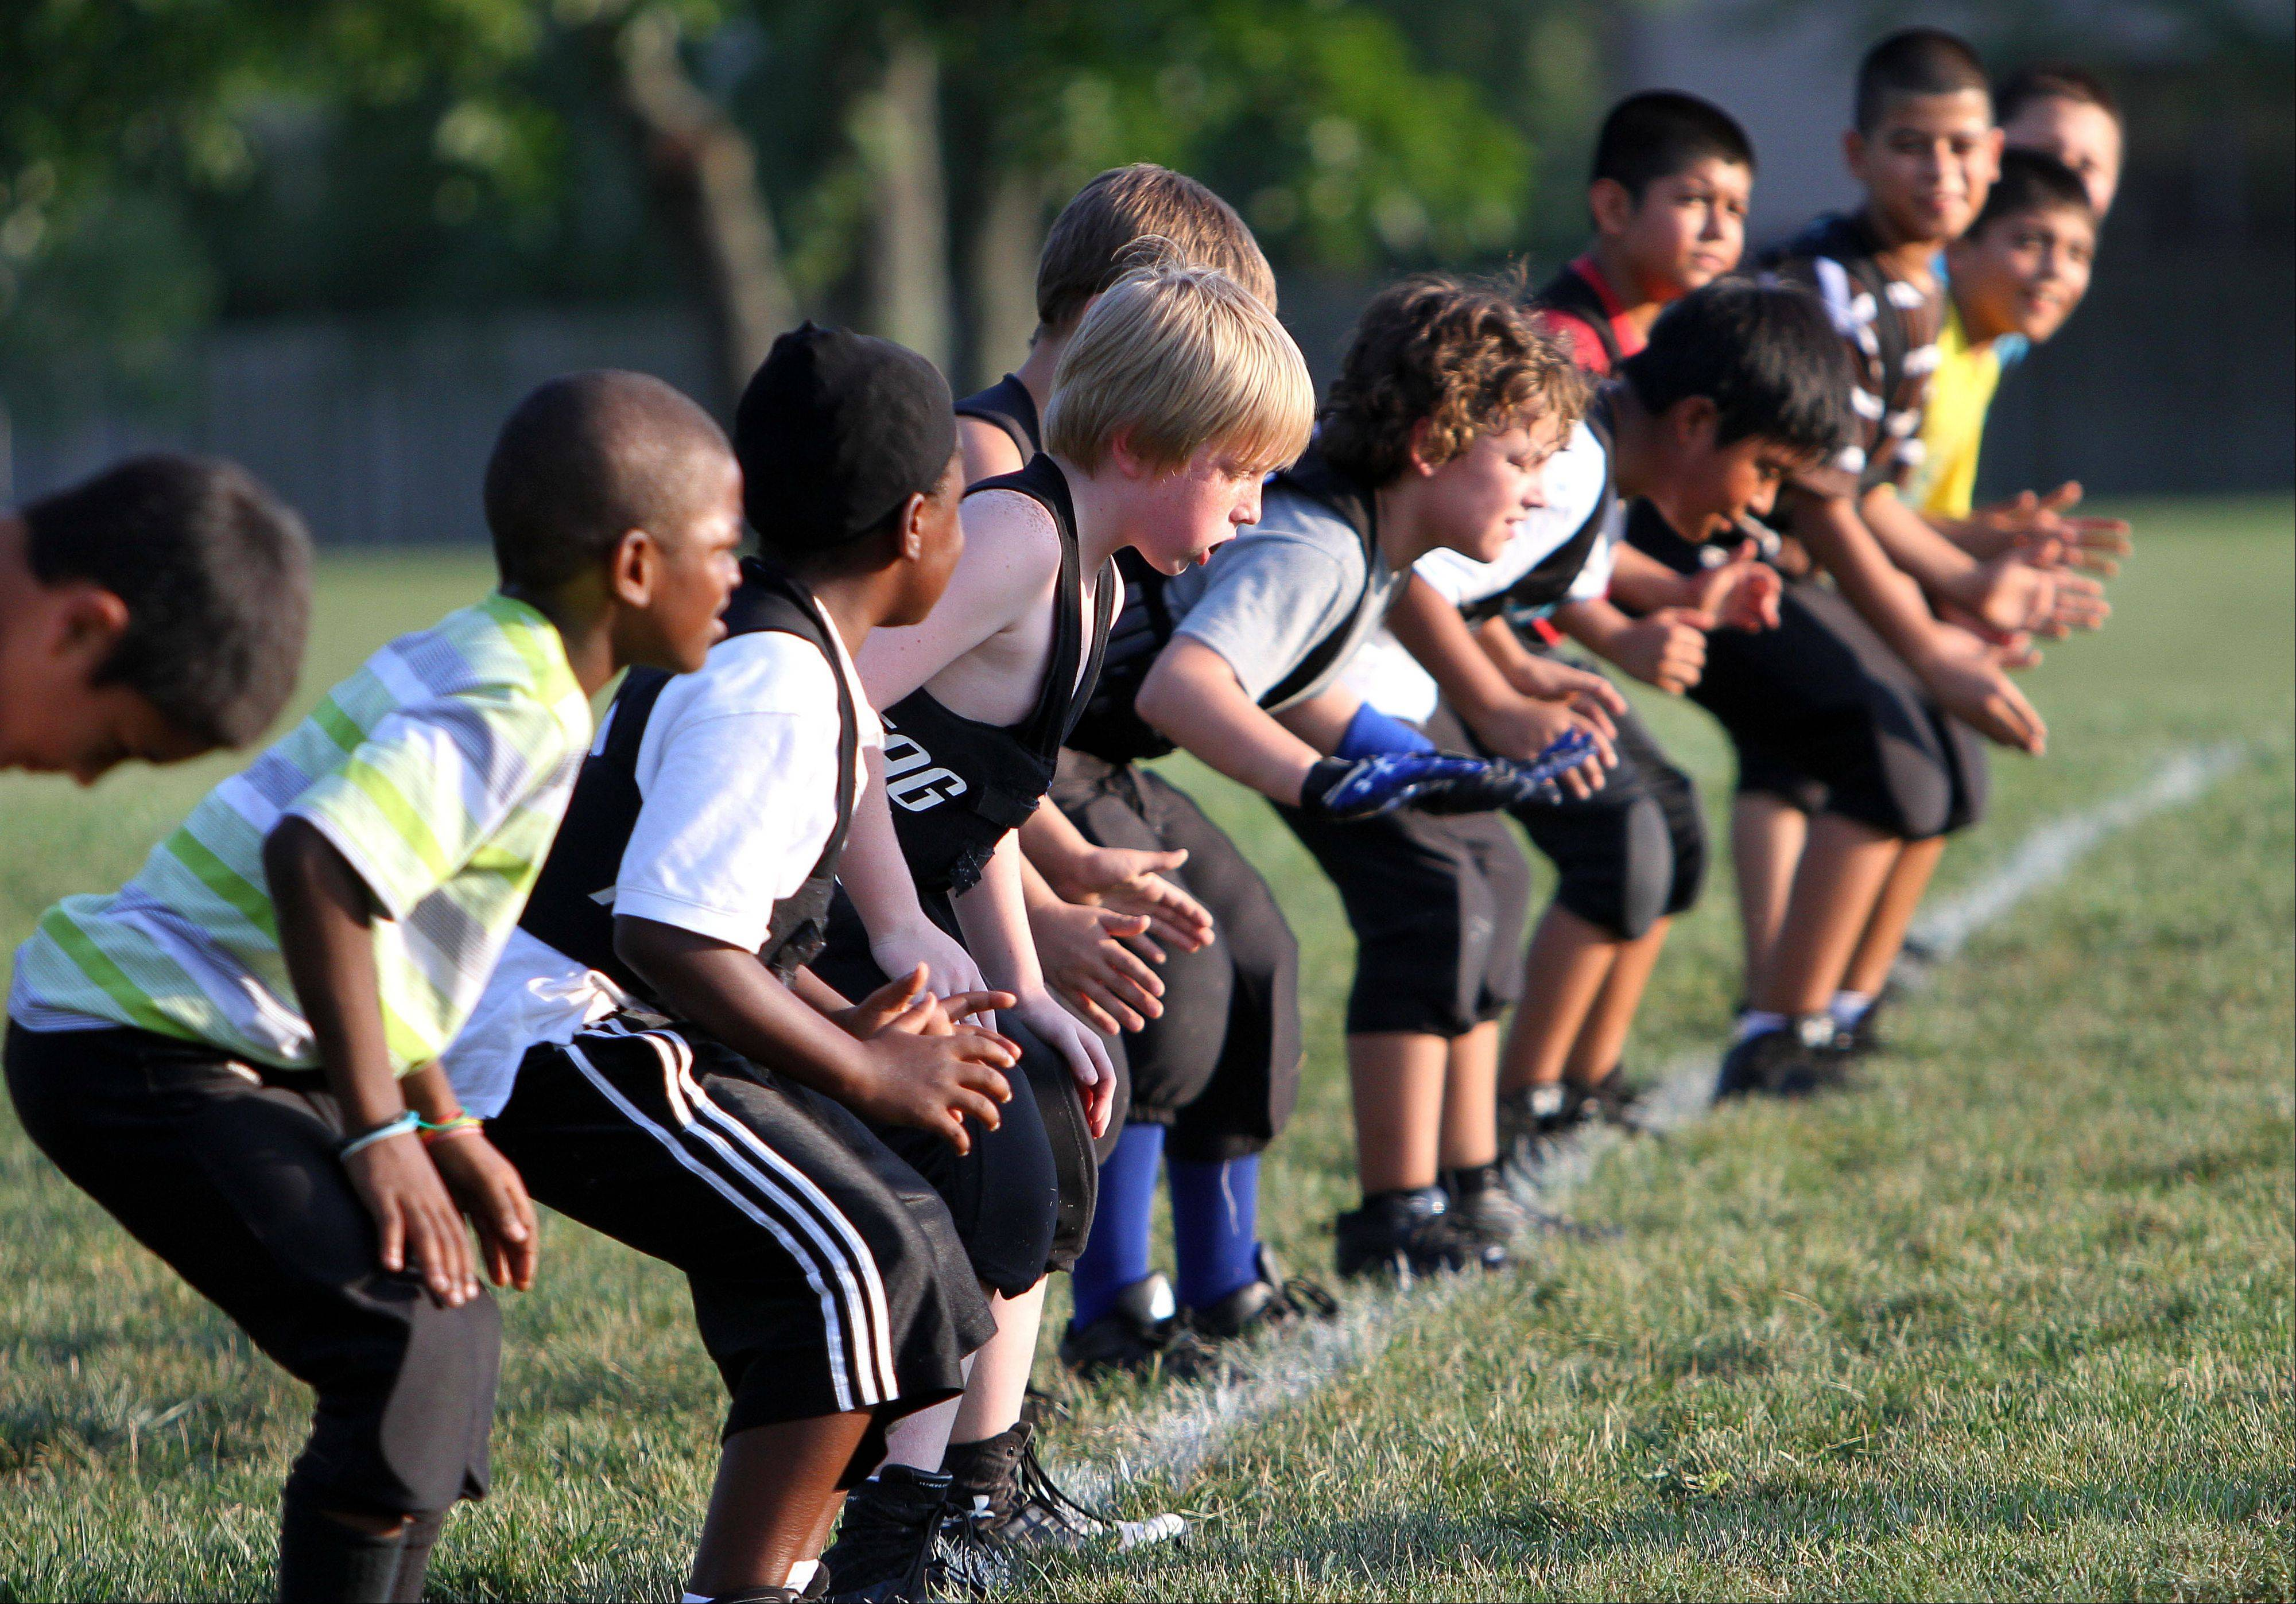 The Ela Junior Bears youth football team practices at Knox Field in Lake Zurich. The team has opened to children who previously could not afford to join a youth sports team.